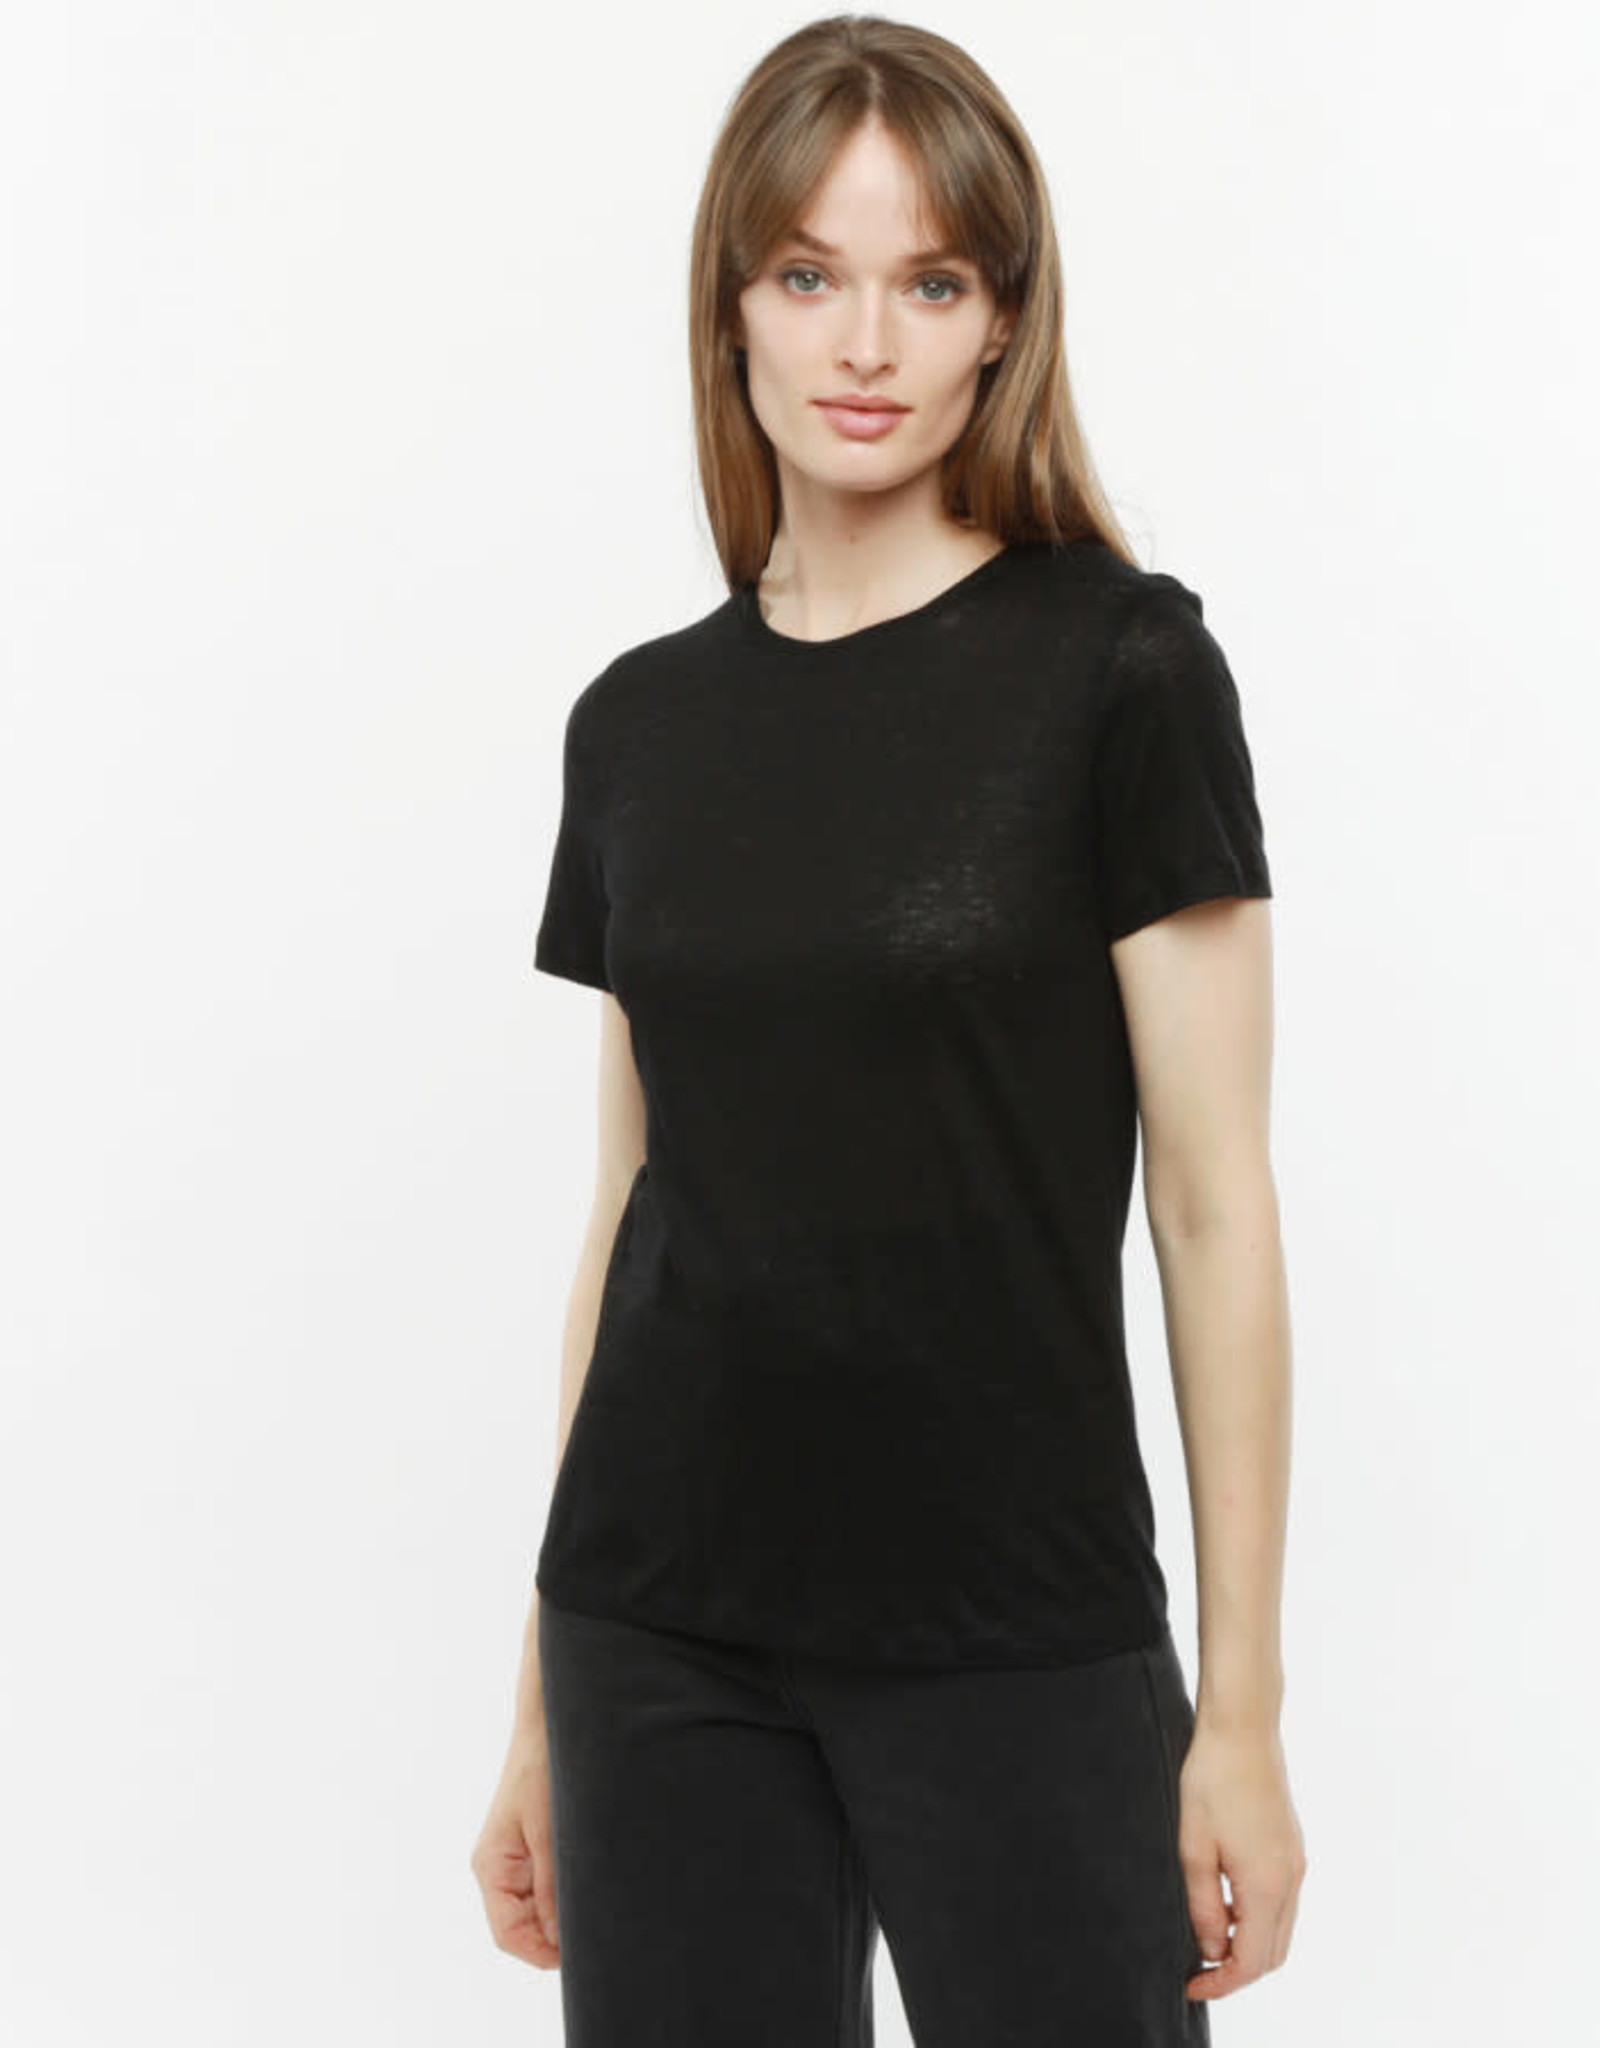 The Golden House T-Shirt 'Melody' - Black